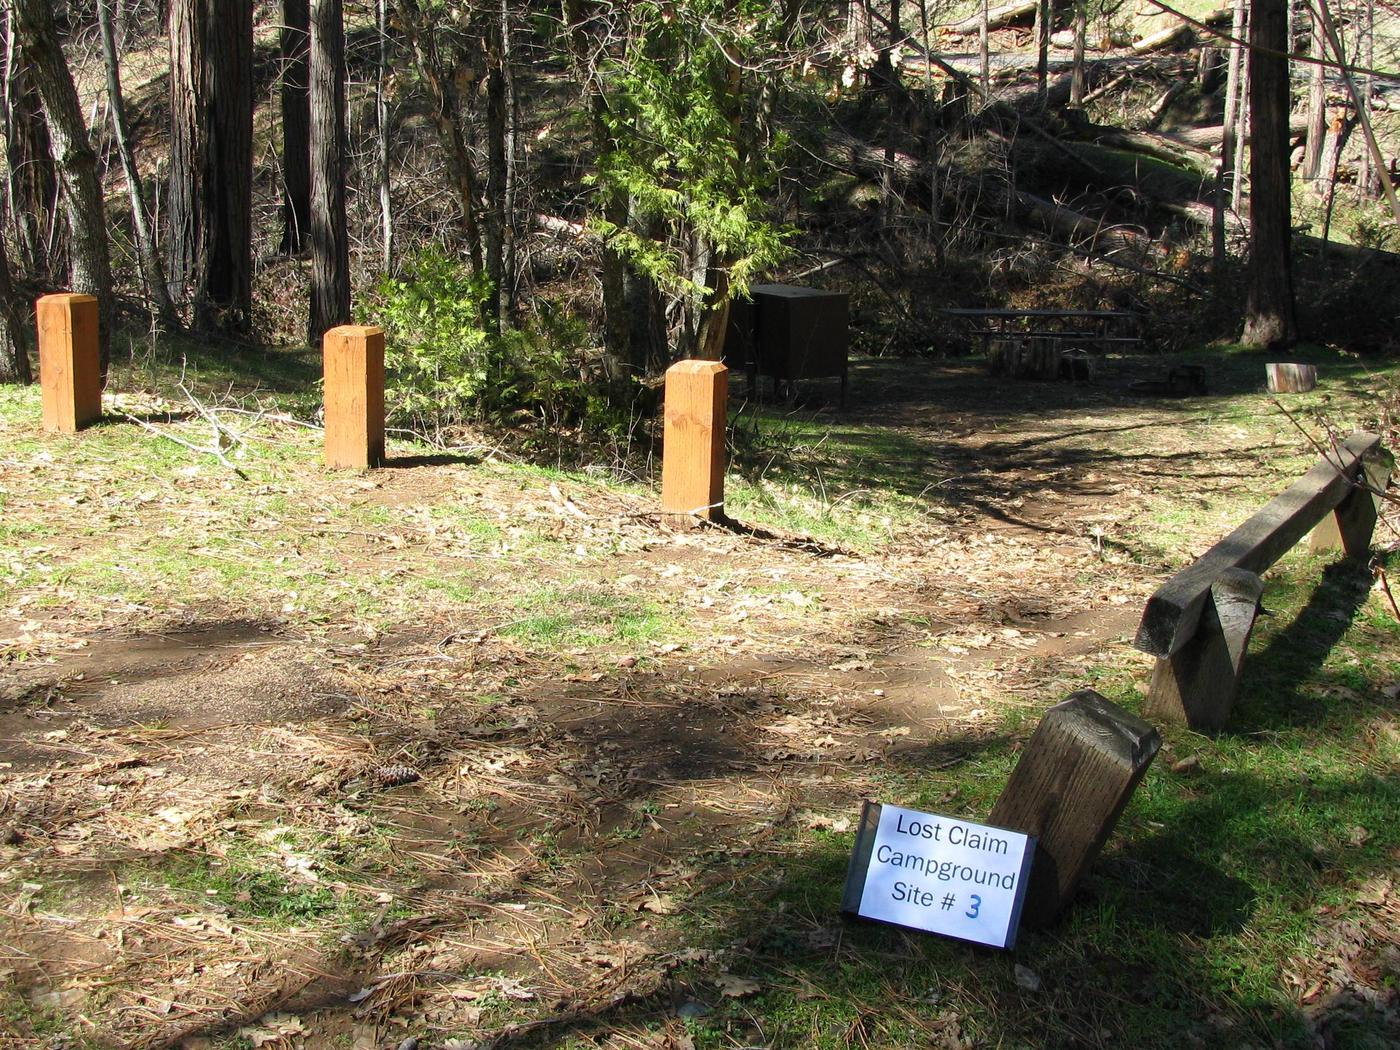 Native surface site with picnic table, fire ring and bear-proof food storage boxLost Claim Campground Site #3